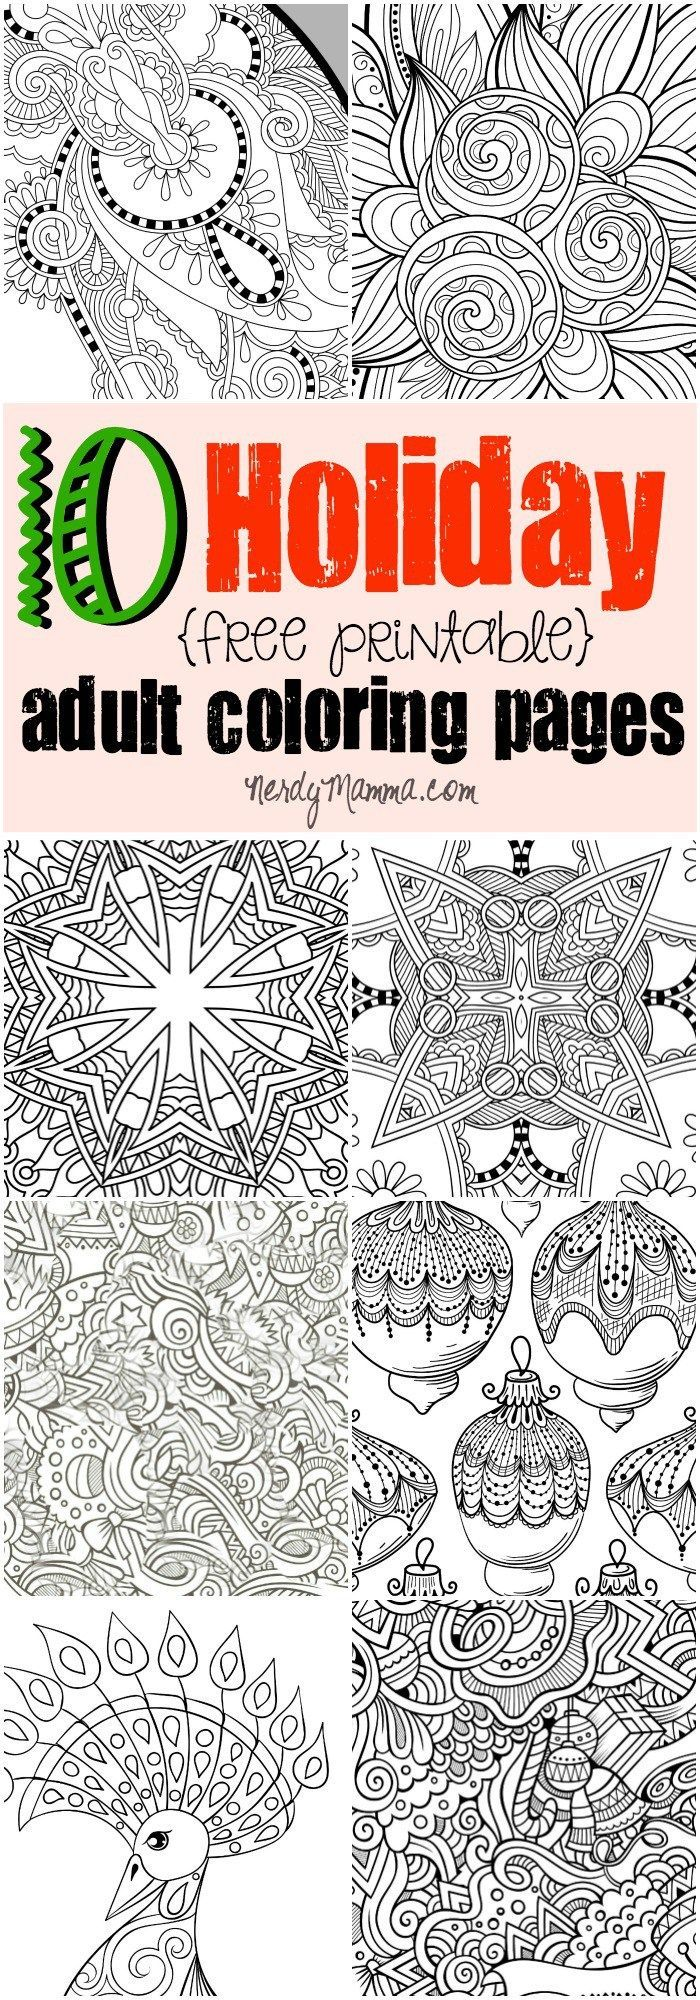 eba2f57d87b4f51cae51f83f41e322b1--printable-adult-coloring-pages-coloring-sheets